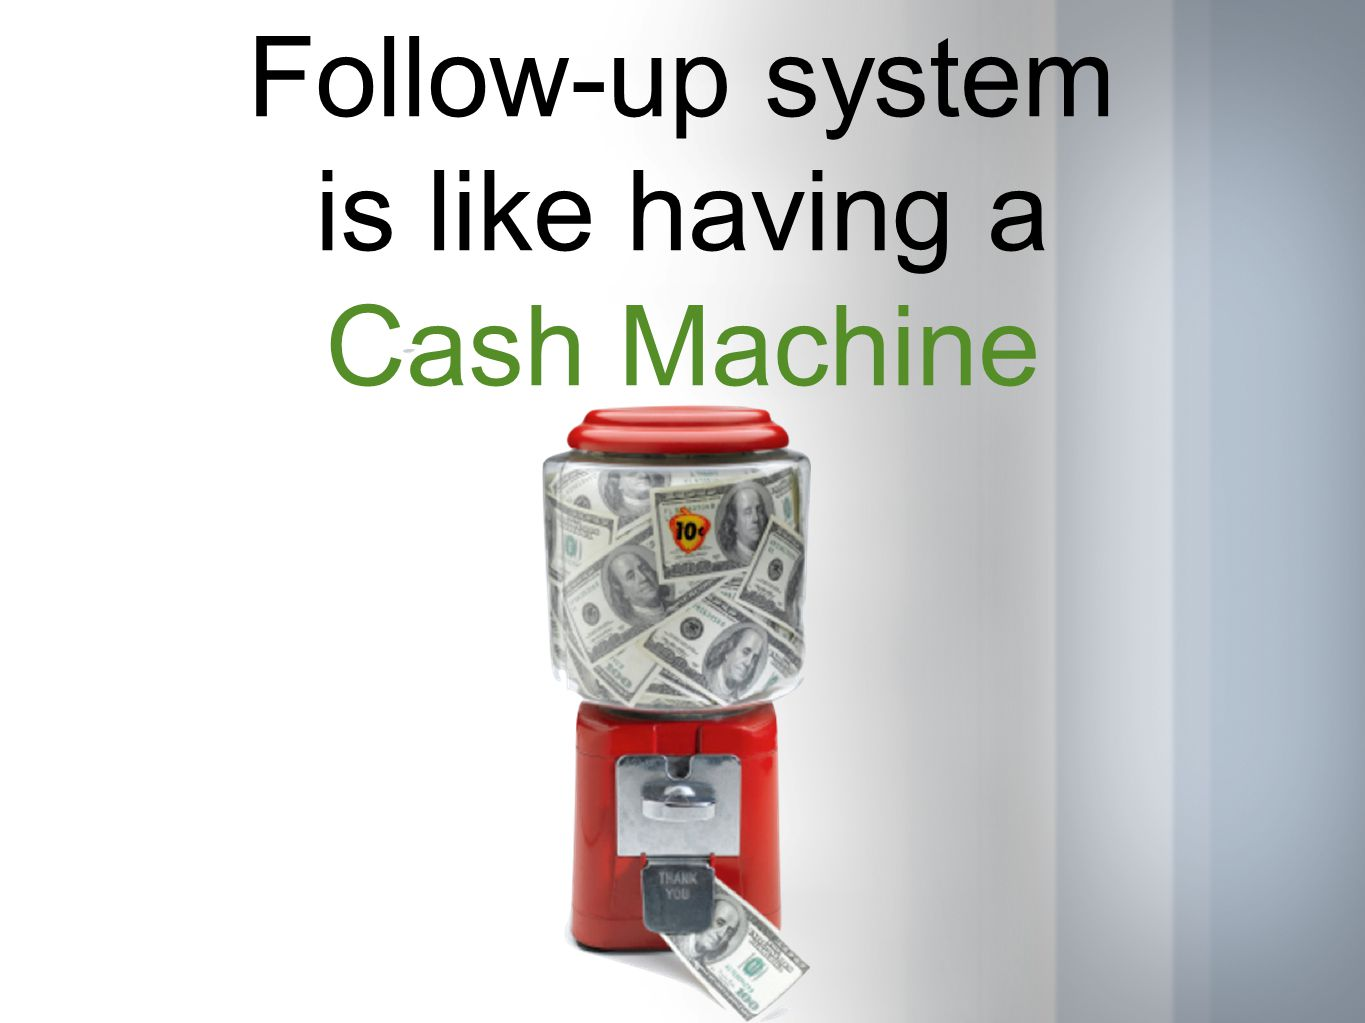 Follow-up system is like having a Cash Machine